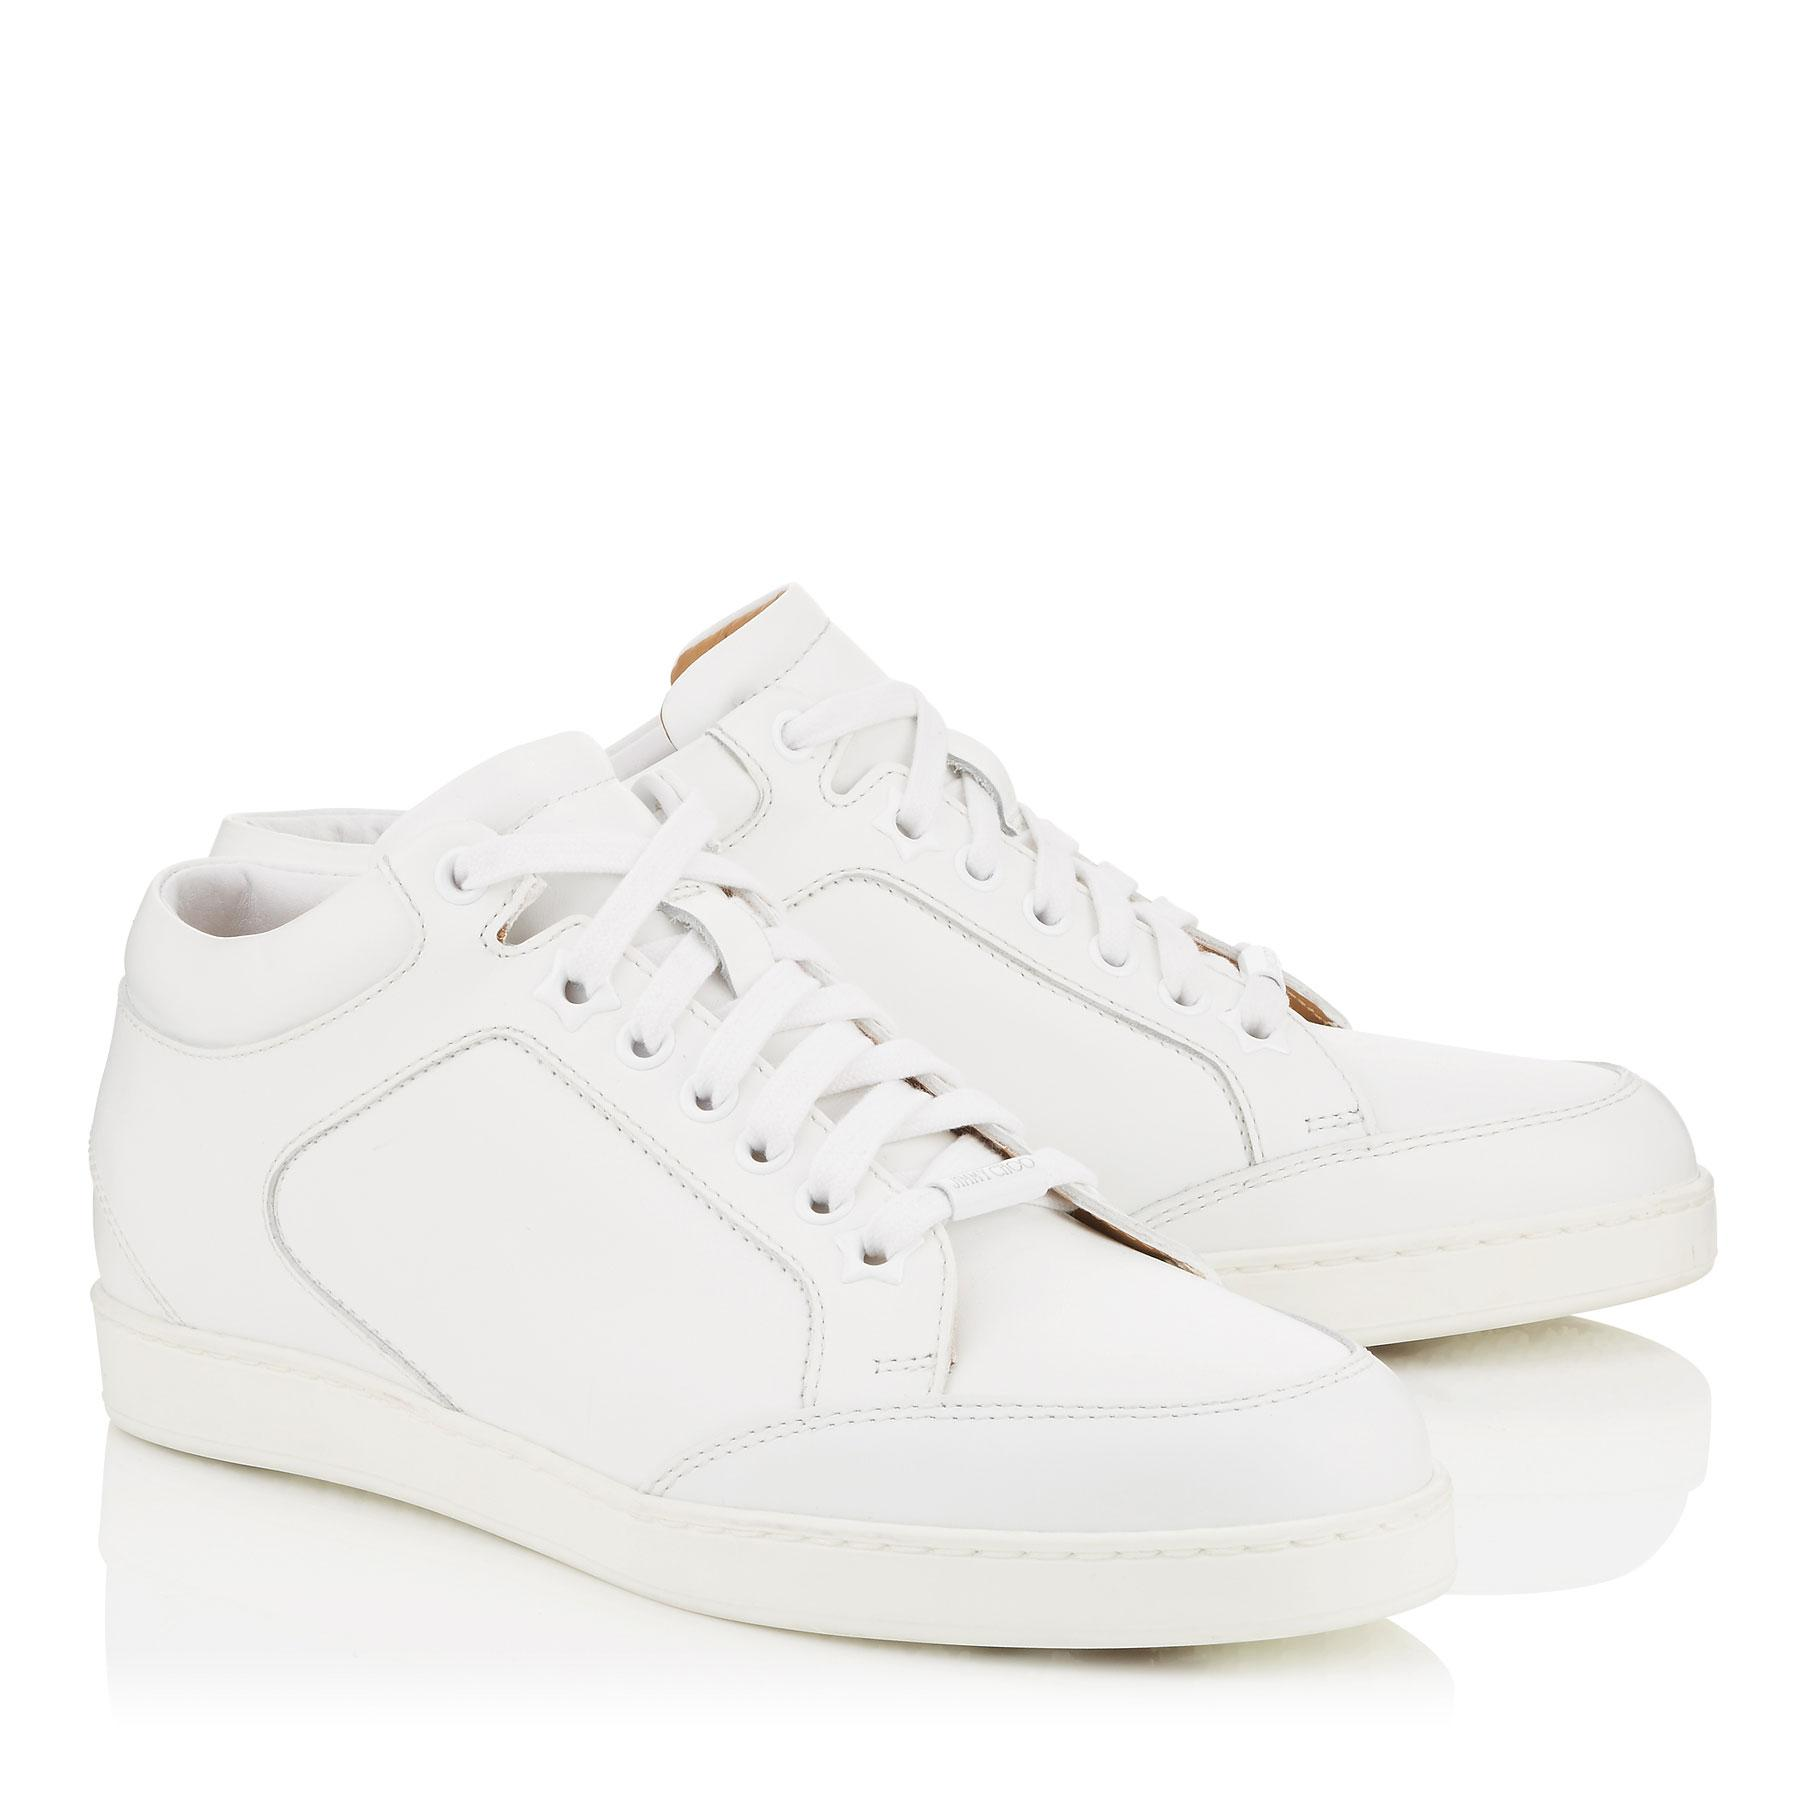 Jimmy Choo Leather Miami in White - Lyst